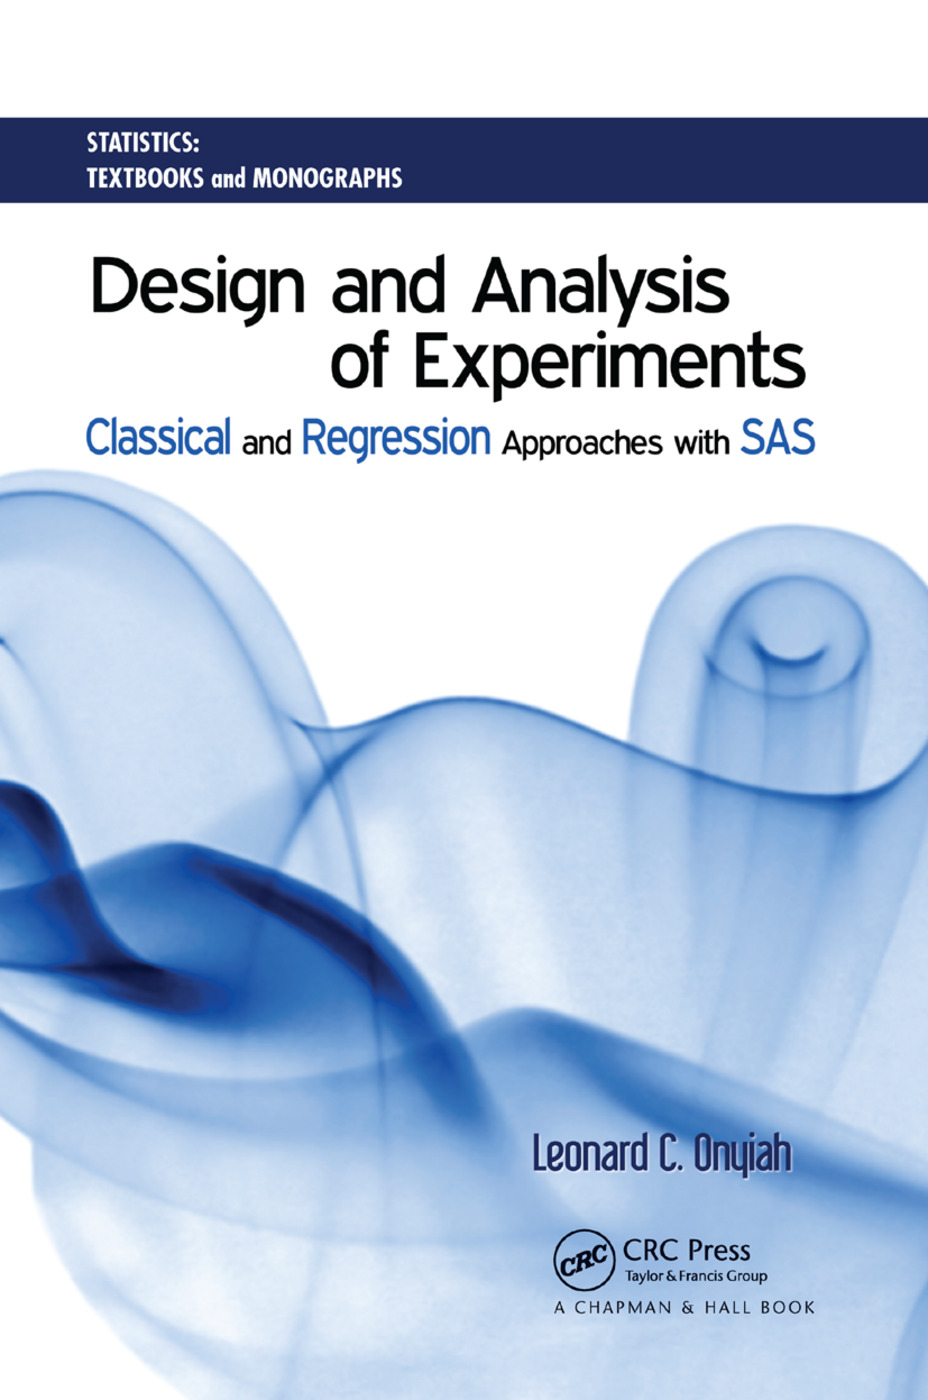 Design and Analysis of Experiments: Classical and Regression Approaches with SAS, 1st Edition (Paperback) book cover